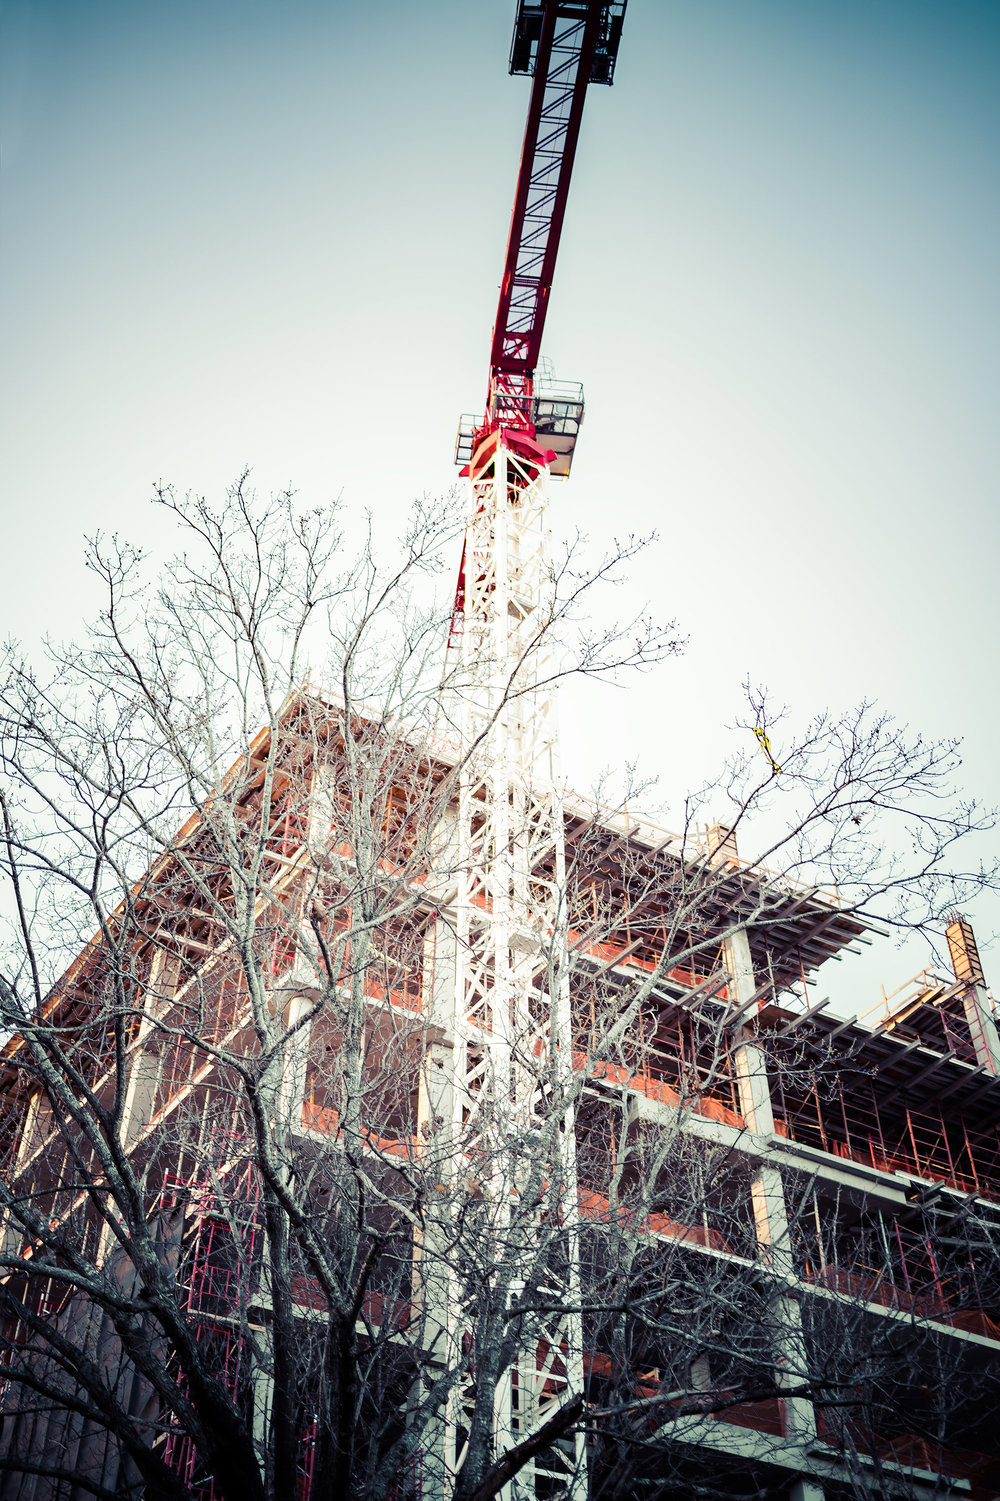 Mondrian at the Musuems—Construction Progress, Feb 2018